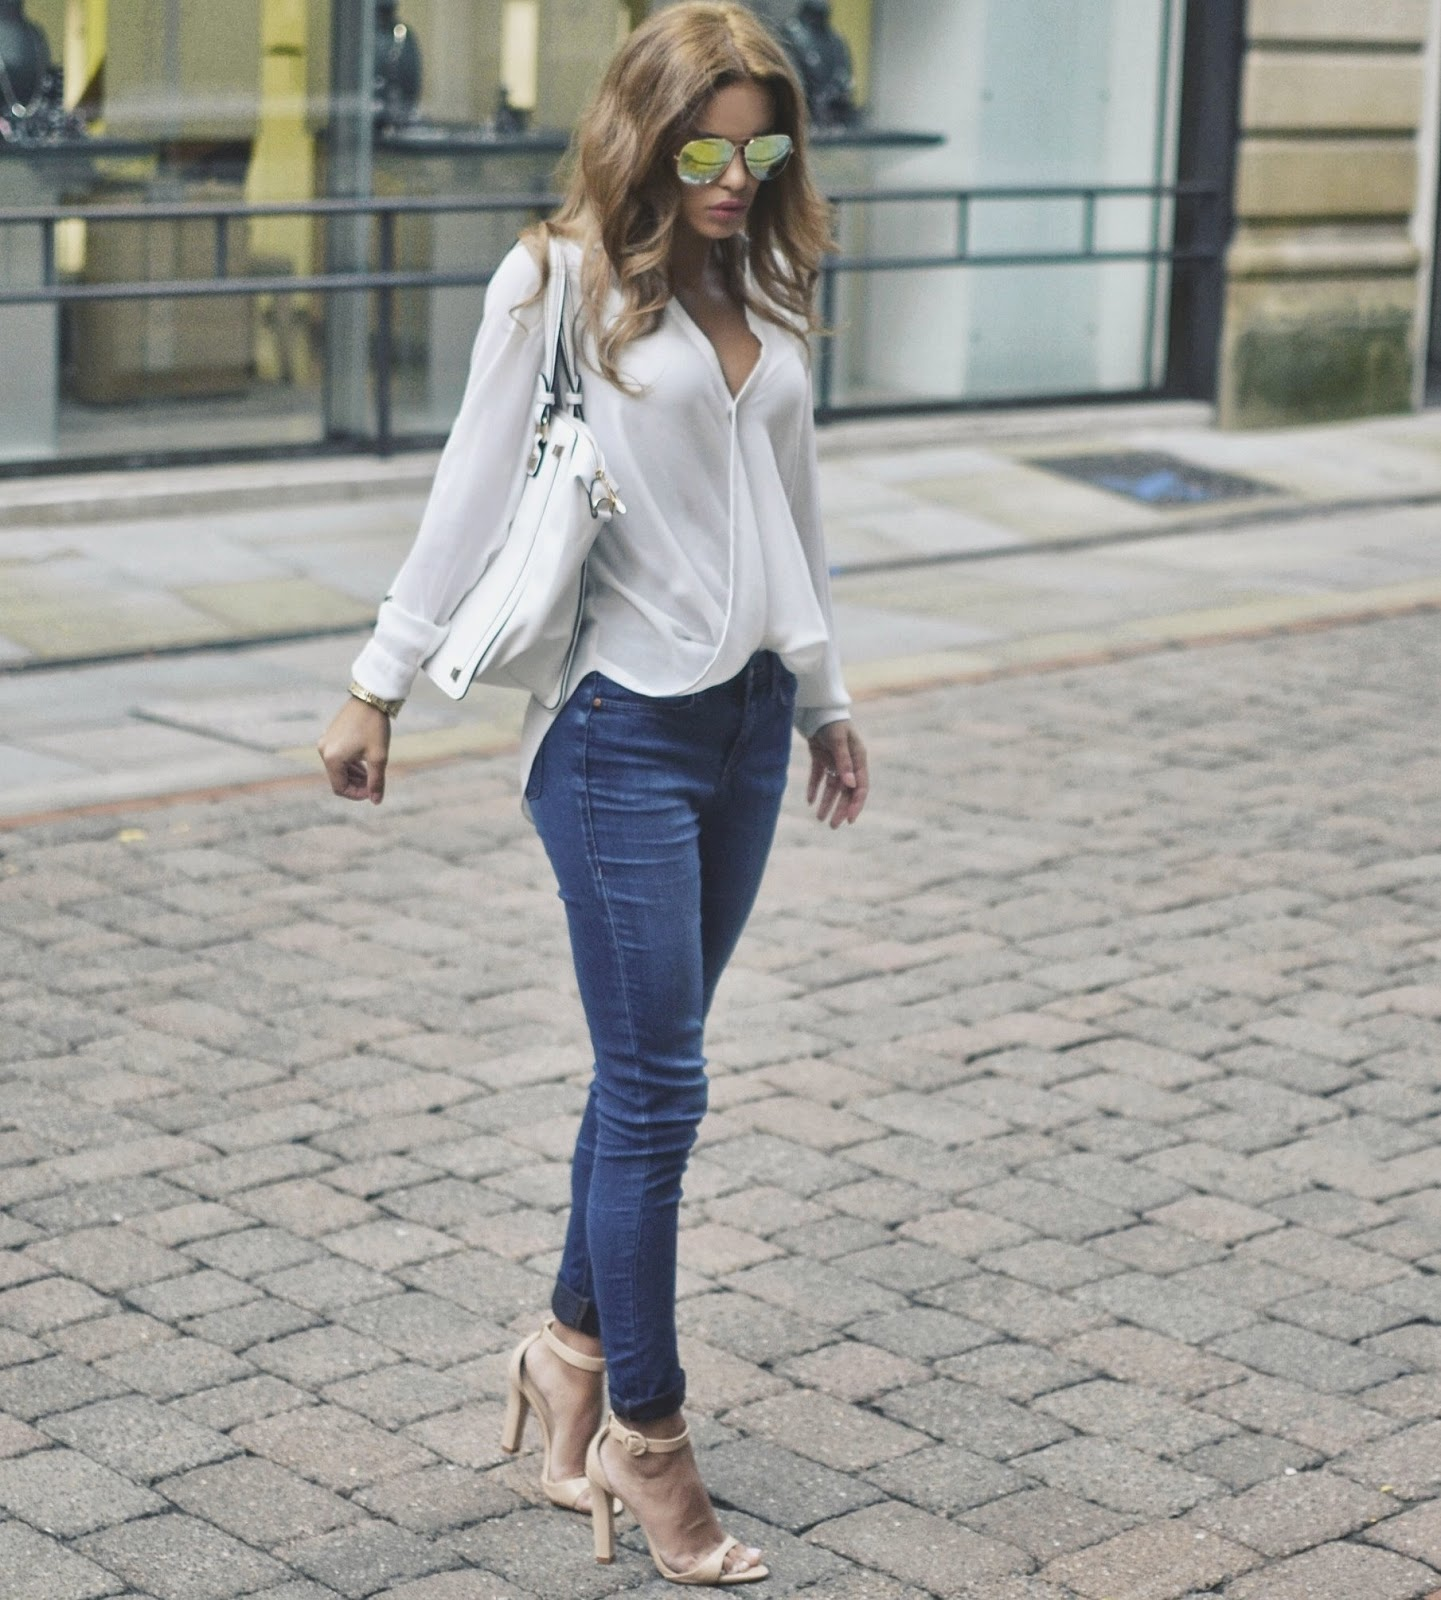 Jeans, High Heels and a Pretty Blouse